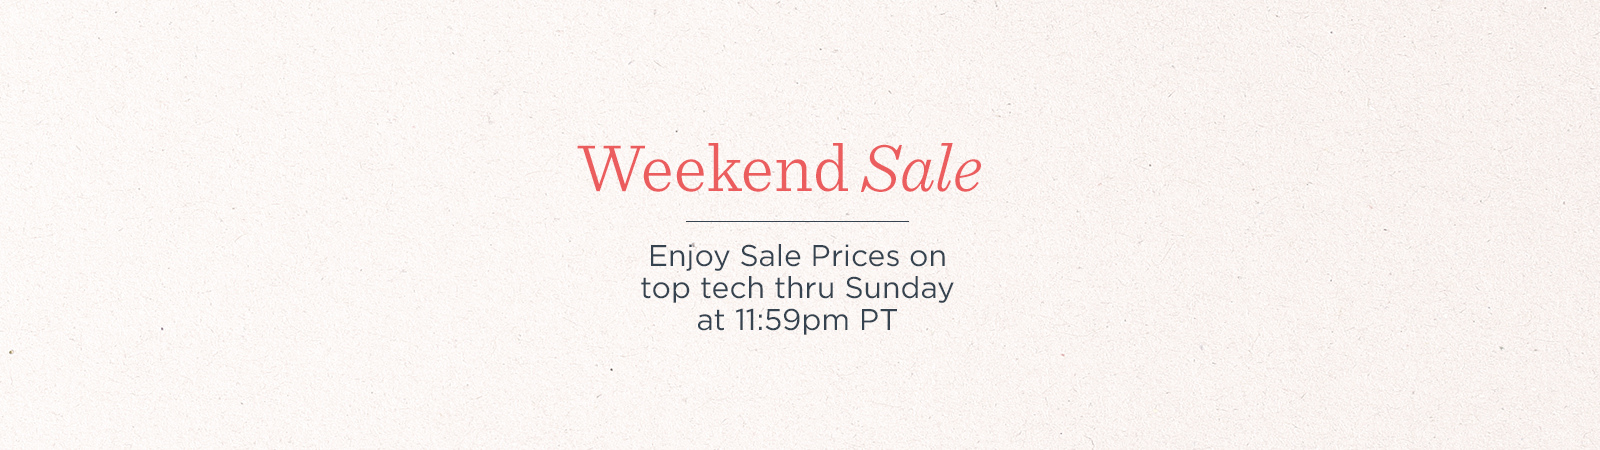 """Weekend Sale. Enjoy Sale Prices on top tech thru Sunday at 11:59pm PT"""" title=""""Weekend Sale. Enjoy Sale Prices on top tech thru Sunday at 11:59pm PT"""